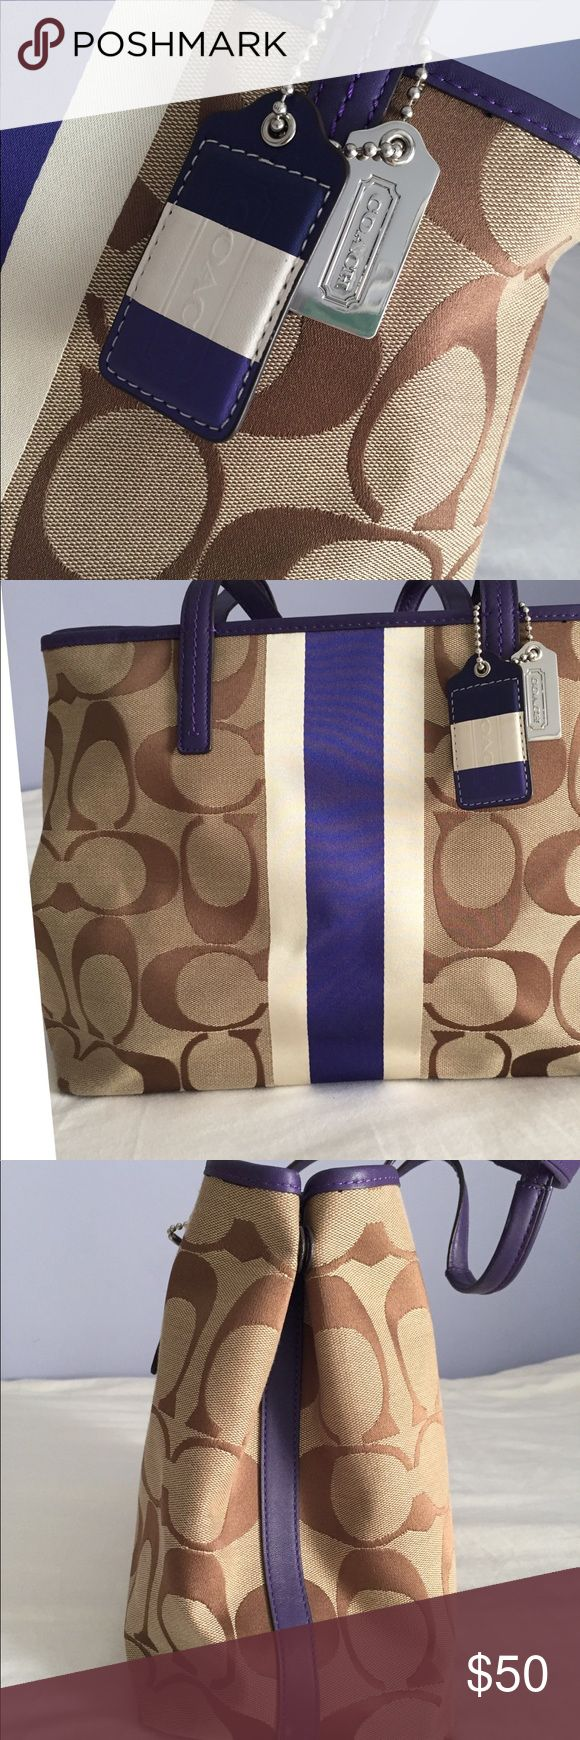 """Coach tote bag Gorgeous tan and purple tote bag in immaculate condition! Only used a few times and stored carefully in my closet. Zips all the way across but can be left open for easy access. Snaps on either side to expand bag size as well. Perfectly clean handles and interior; only a tiny minor scuff on one side, at bottom. Approximately 14.5"""" wide, 10.5"""" tall, 5"""" base, and 9"""" handle drop. Give this beautiful bag a new life! Coach Bags Totes"""